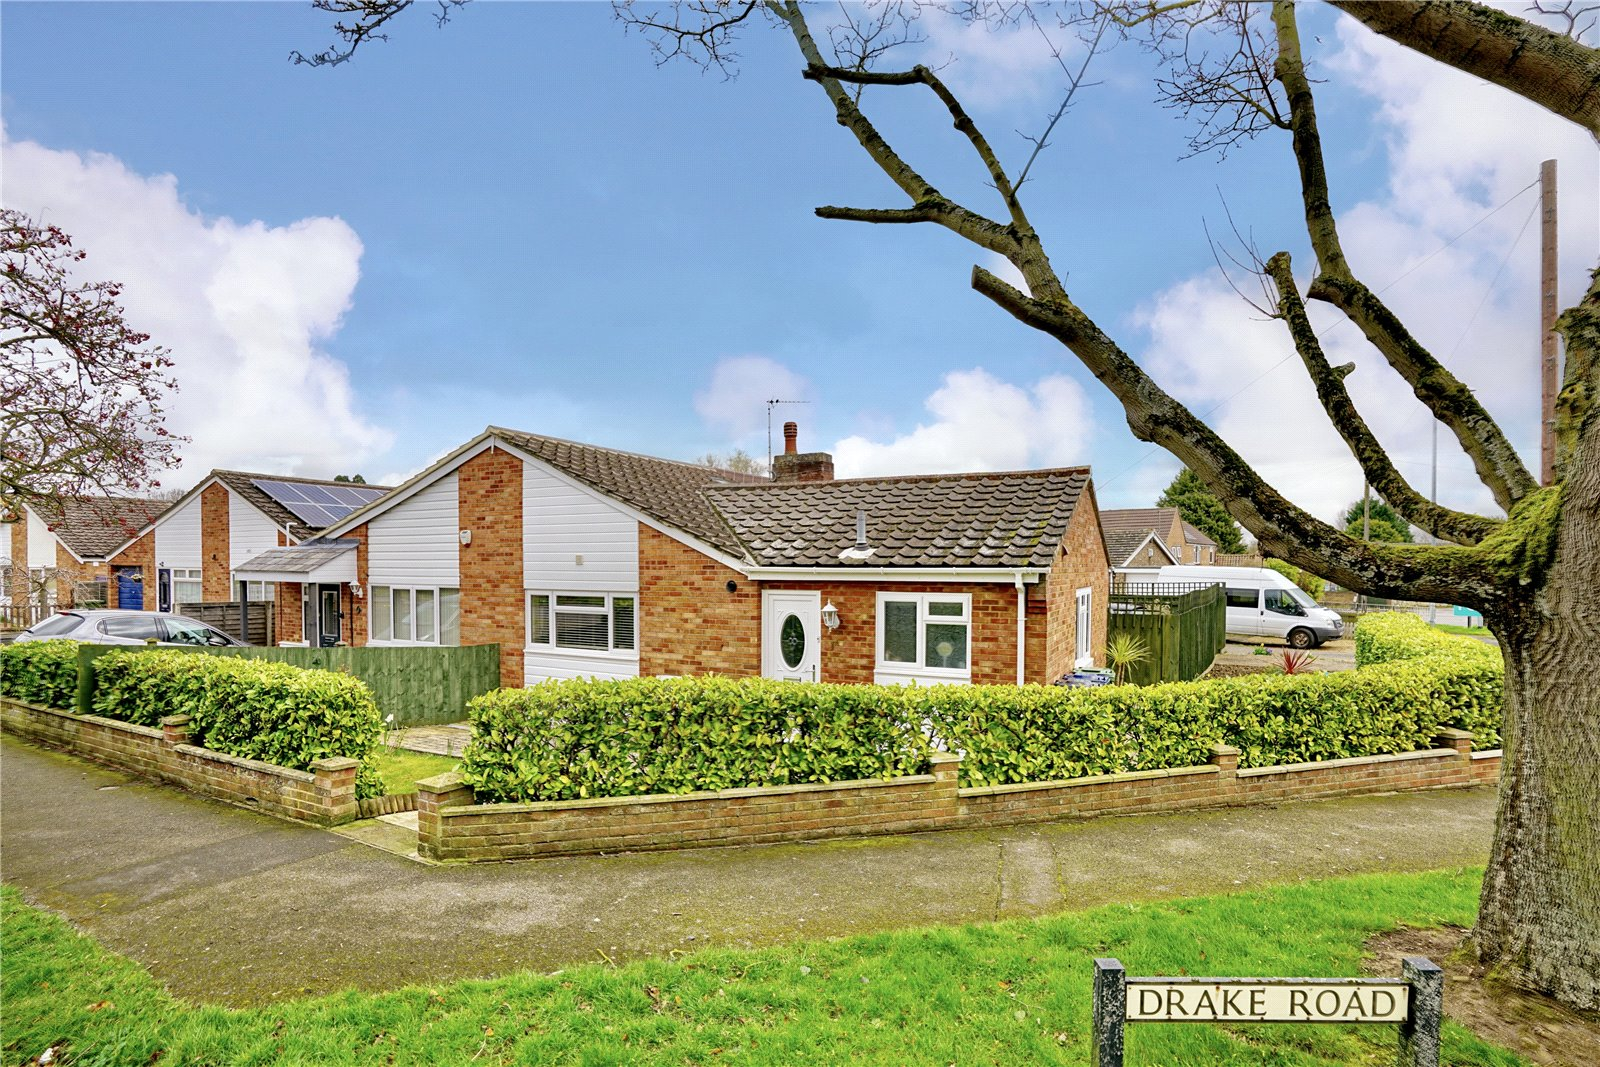 2 bed bungalow for sale in Drake Road, Eaton Socon, PE19